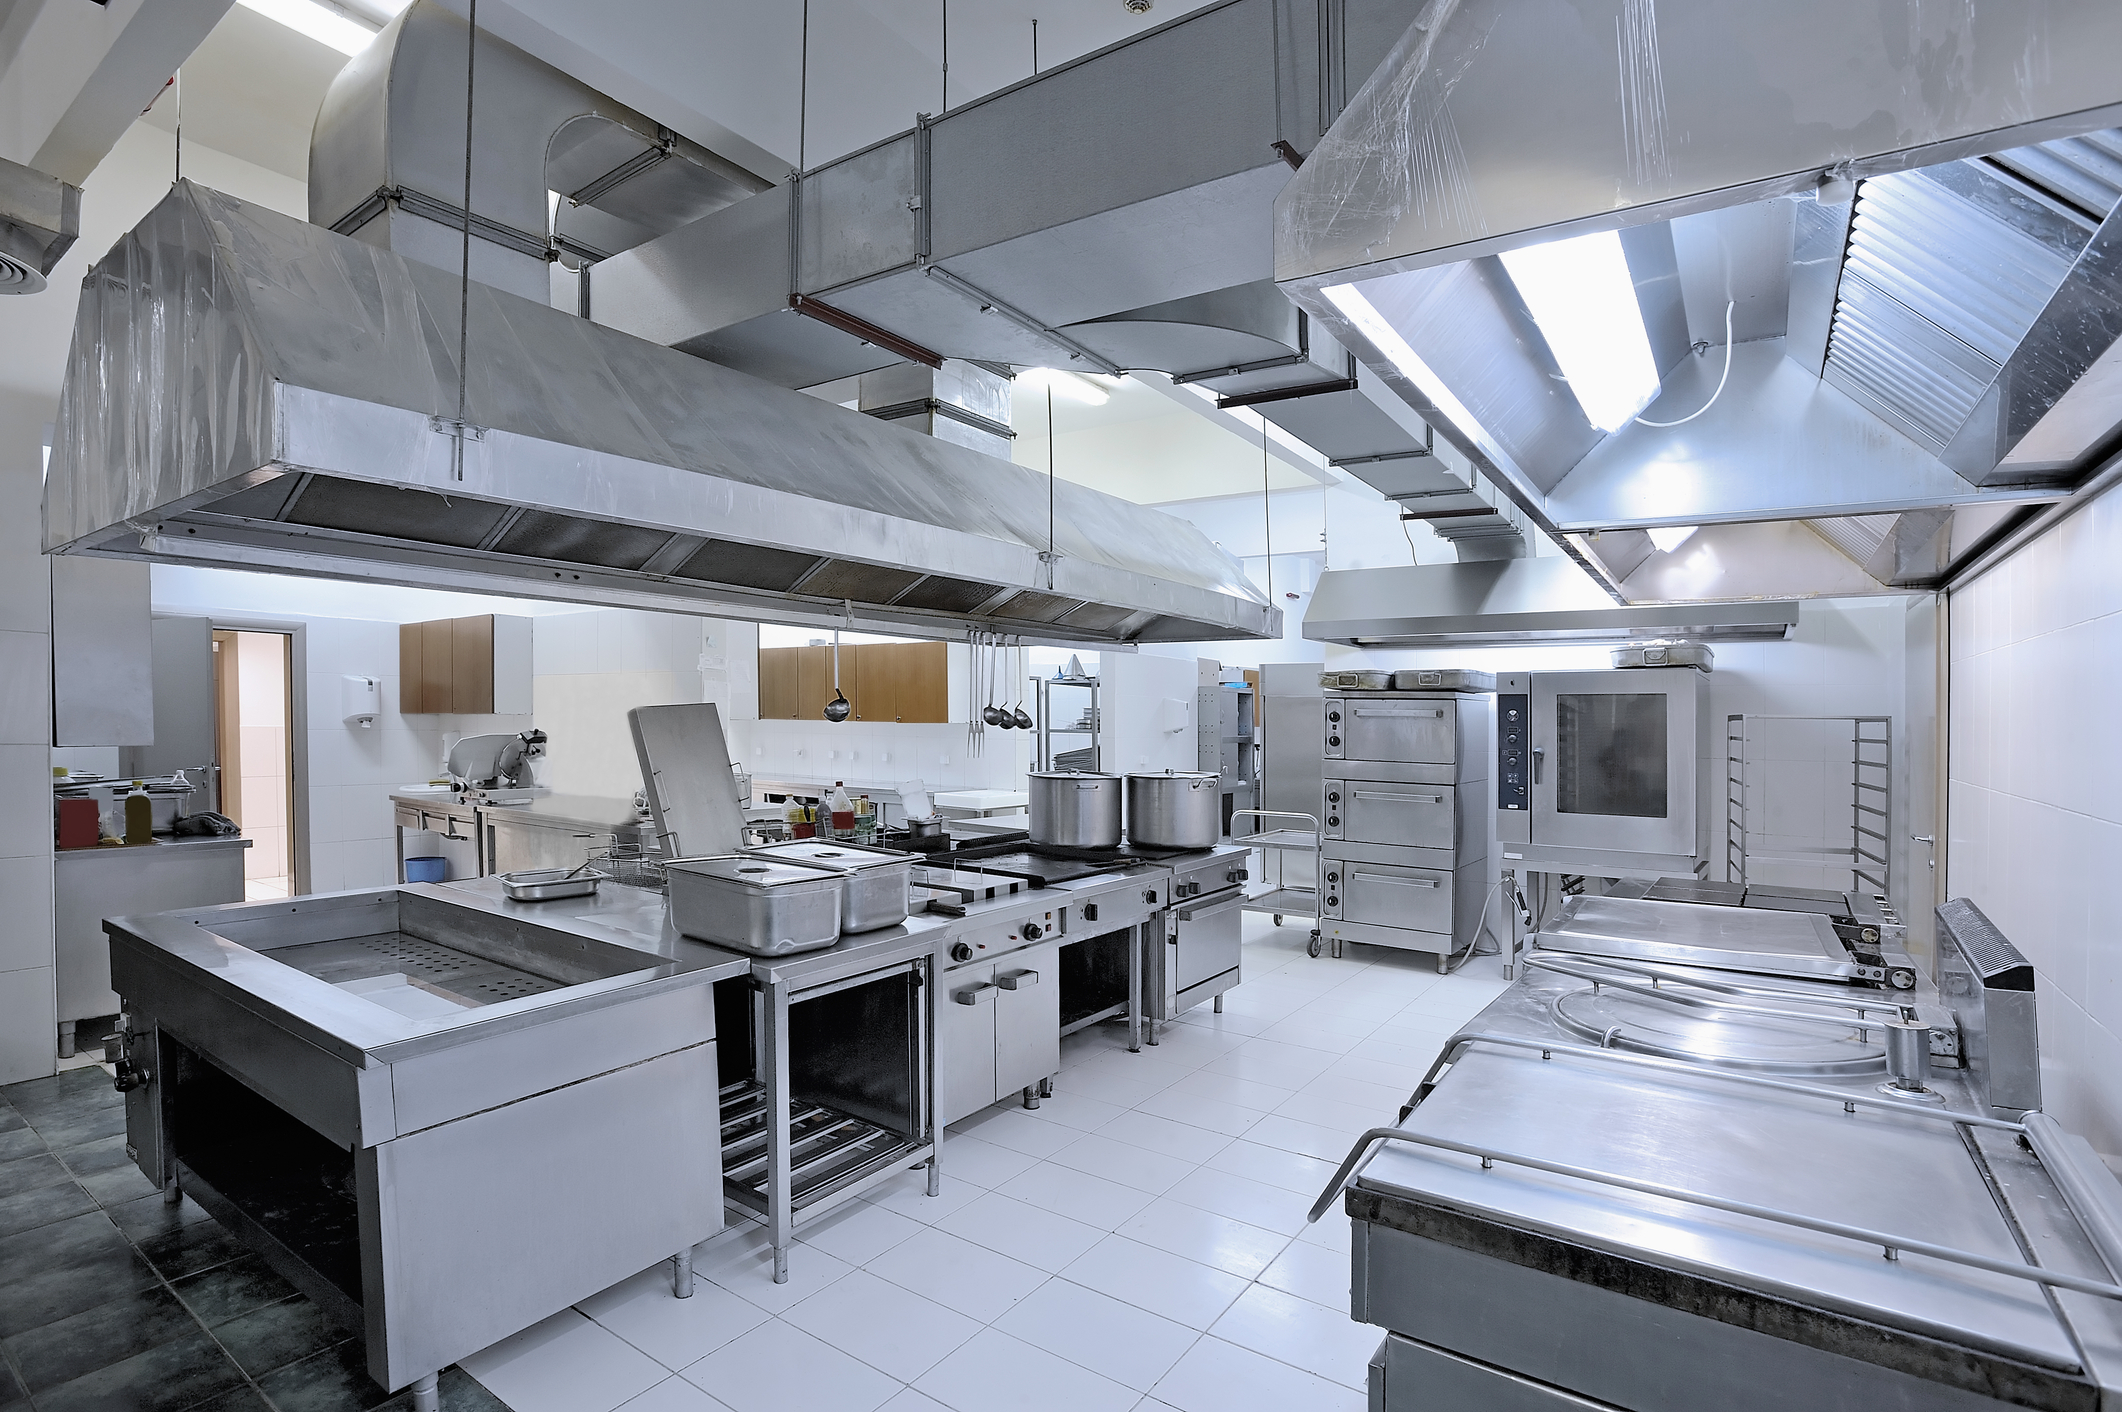 commercial kitchen design guide kitchen design best 5 important things you 370